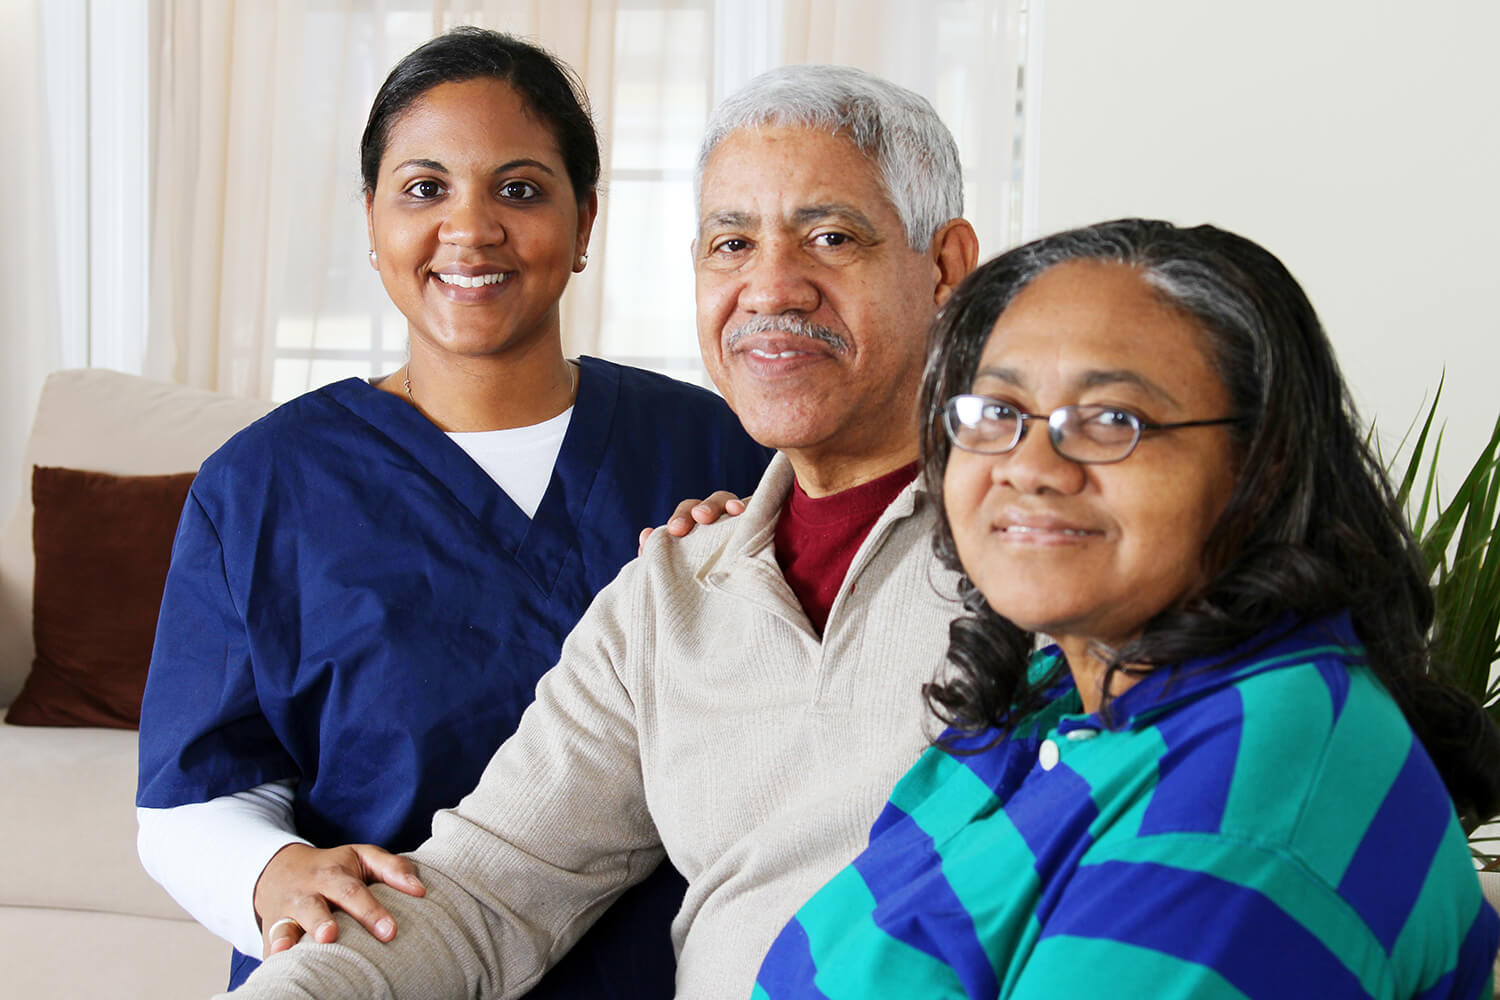 Older man in grey sweater with maroon under shirt sits next to lady in blue and green stiped shirt with glasses while nurse in dark blue scrubs stands behind man's shoulder (all smiling)